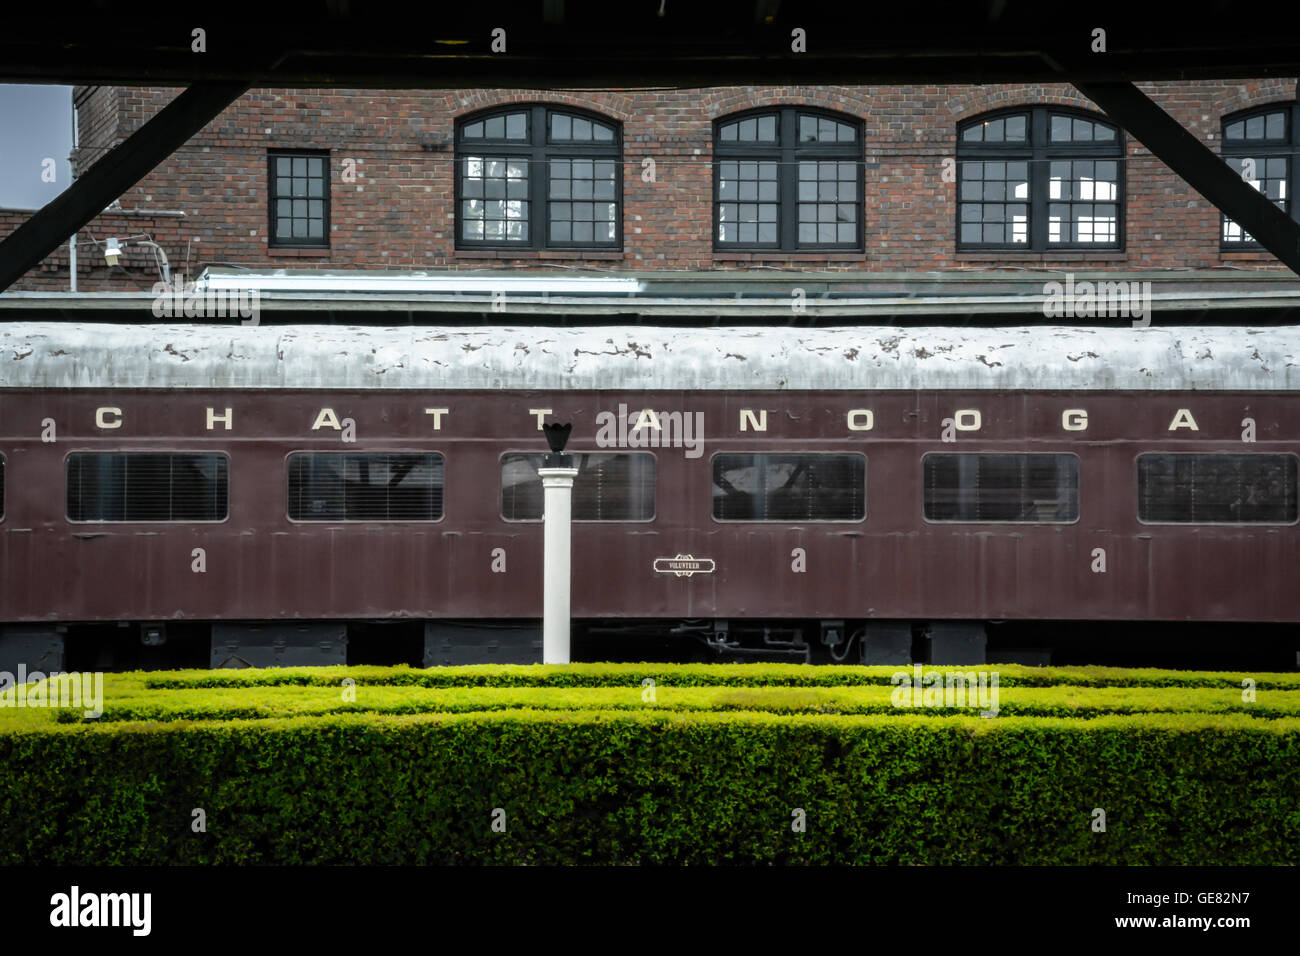 The historical Chattanooga Choo Choo Hotel's vintage branded train car on the tracks along side the garden complex - Stock Image